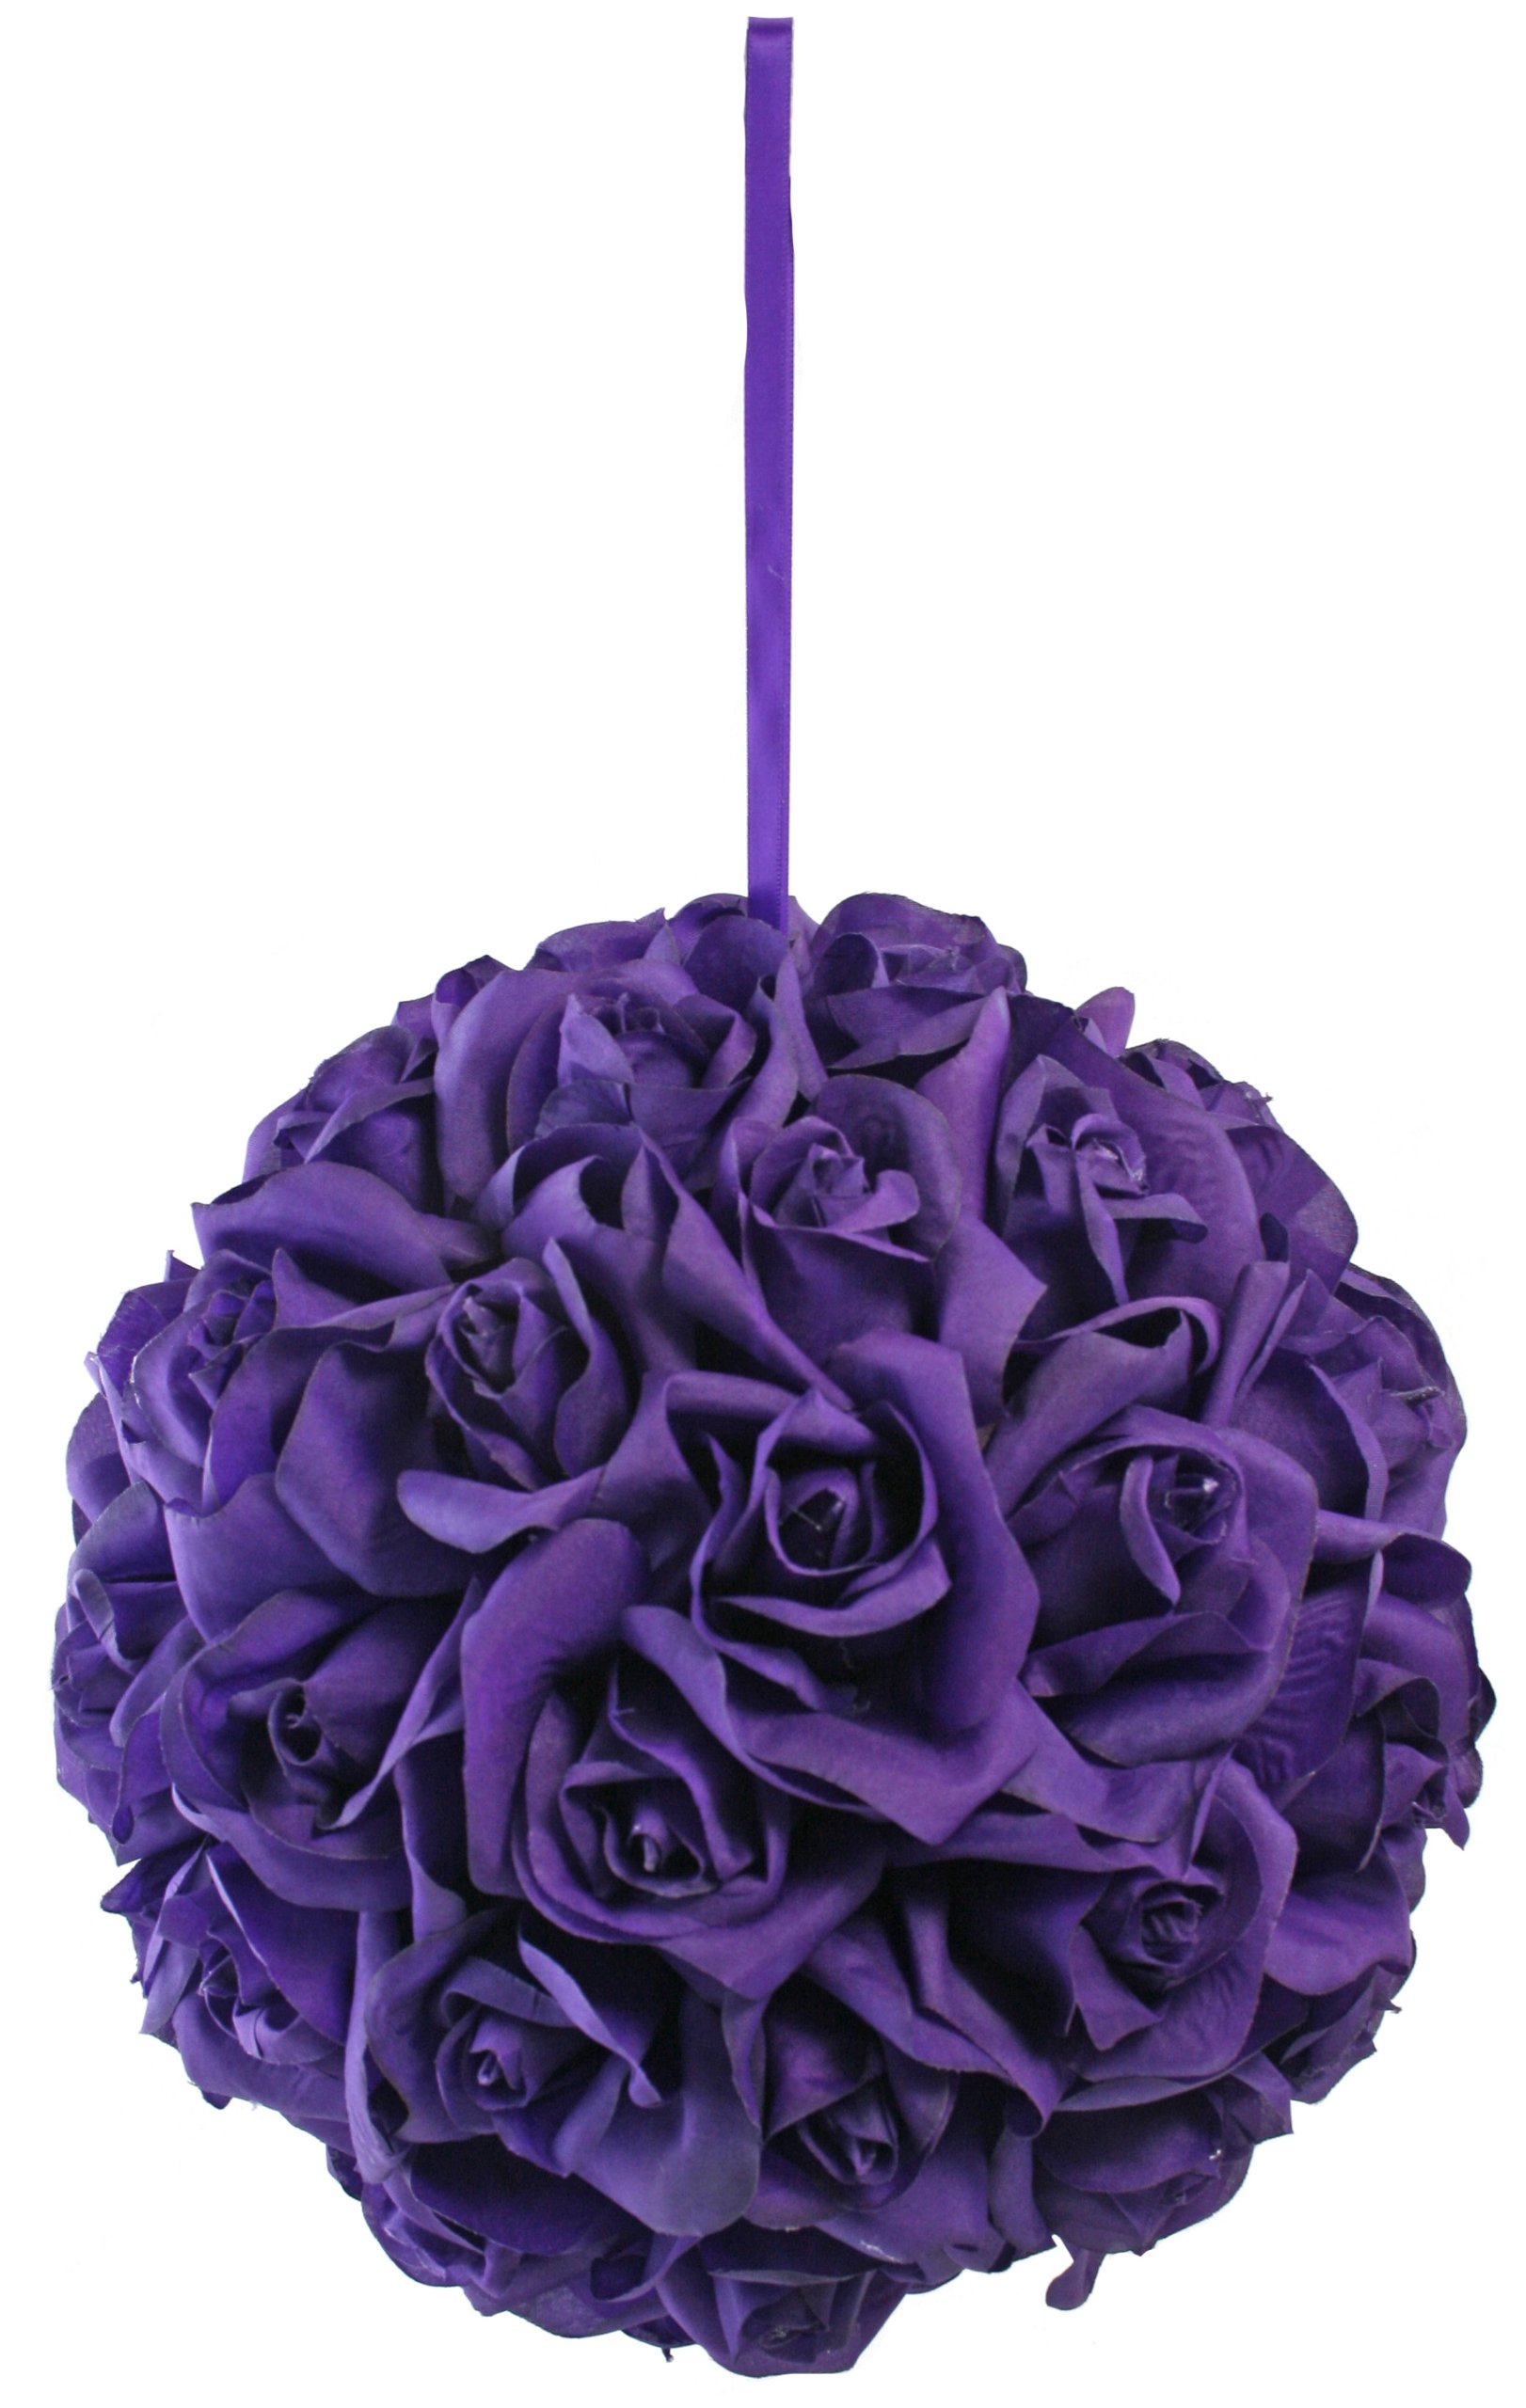 Garden-Rose-Kissing-Ball-Purple-10-Inch-Pomander-Extra-Large